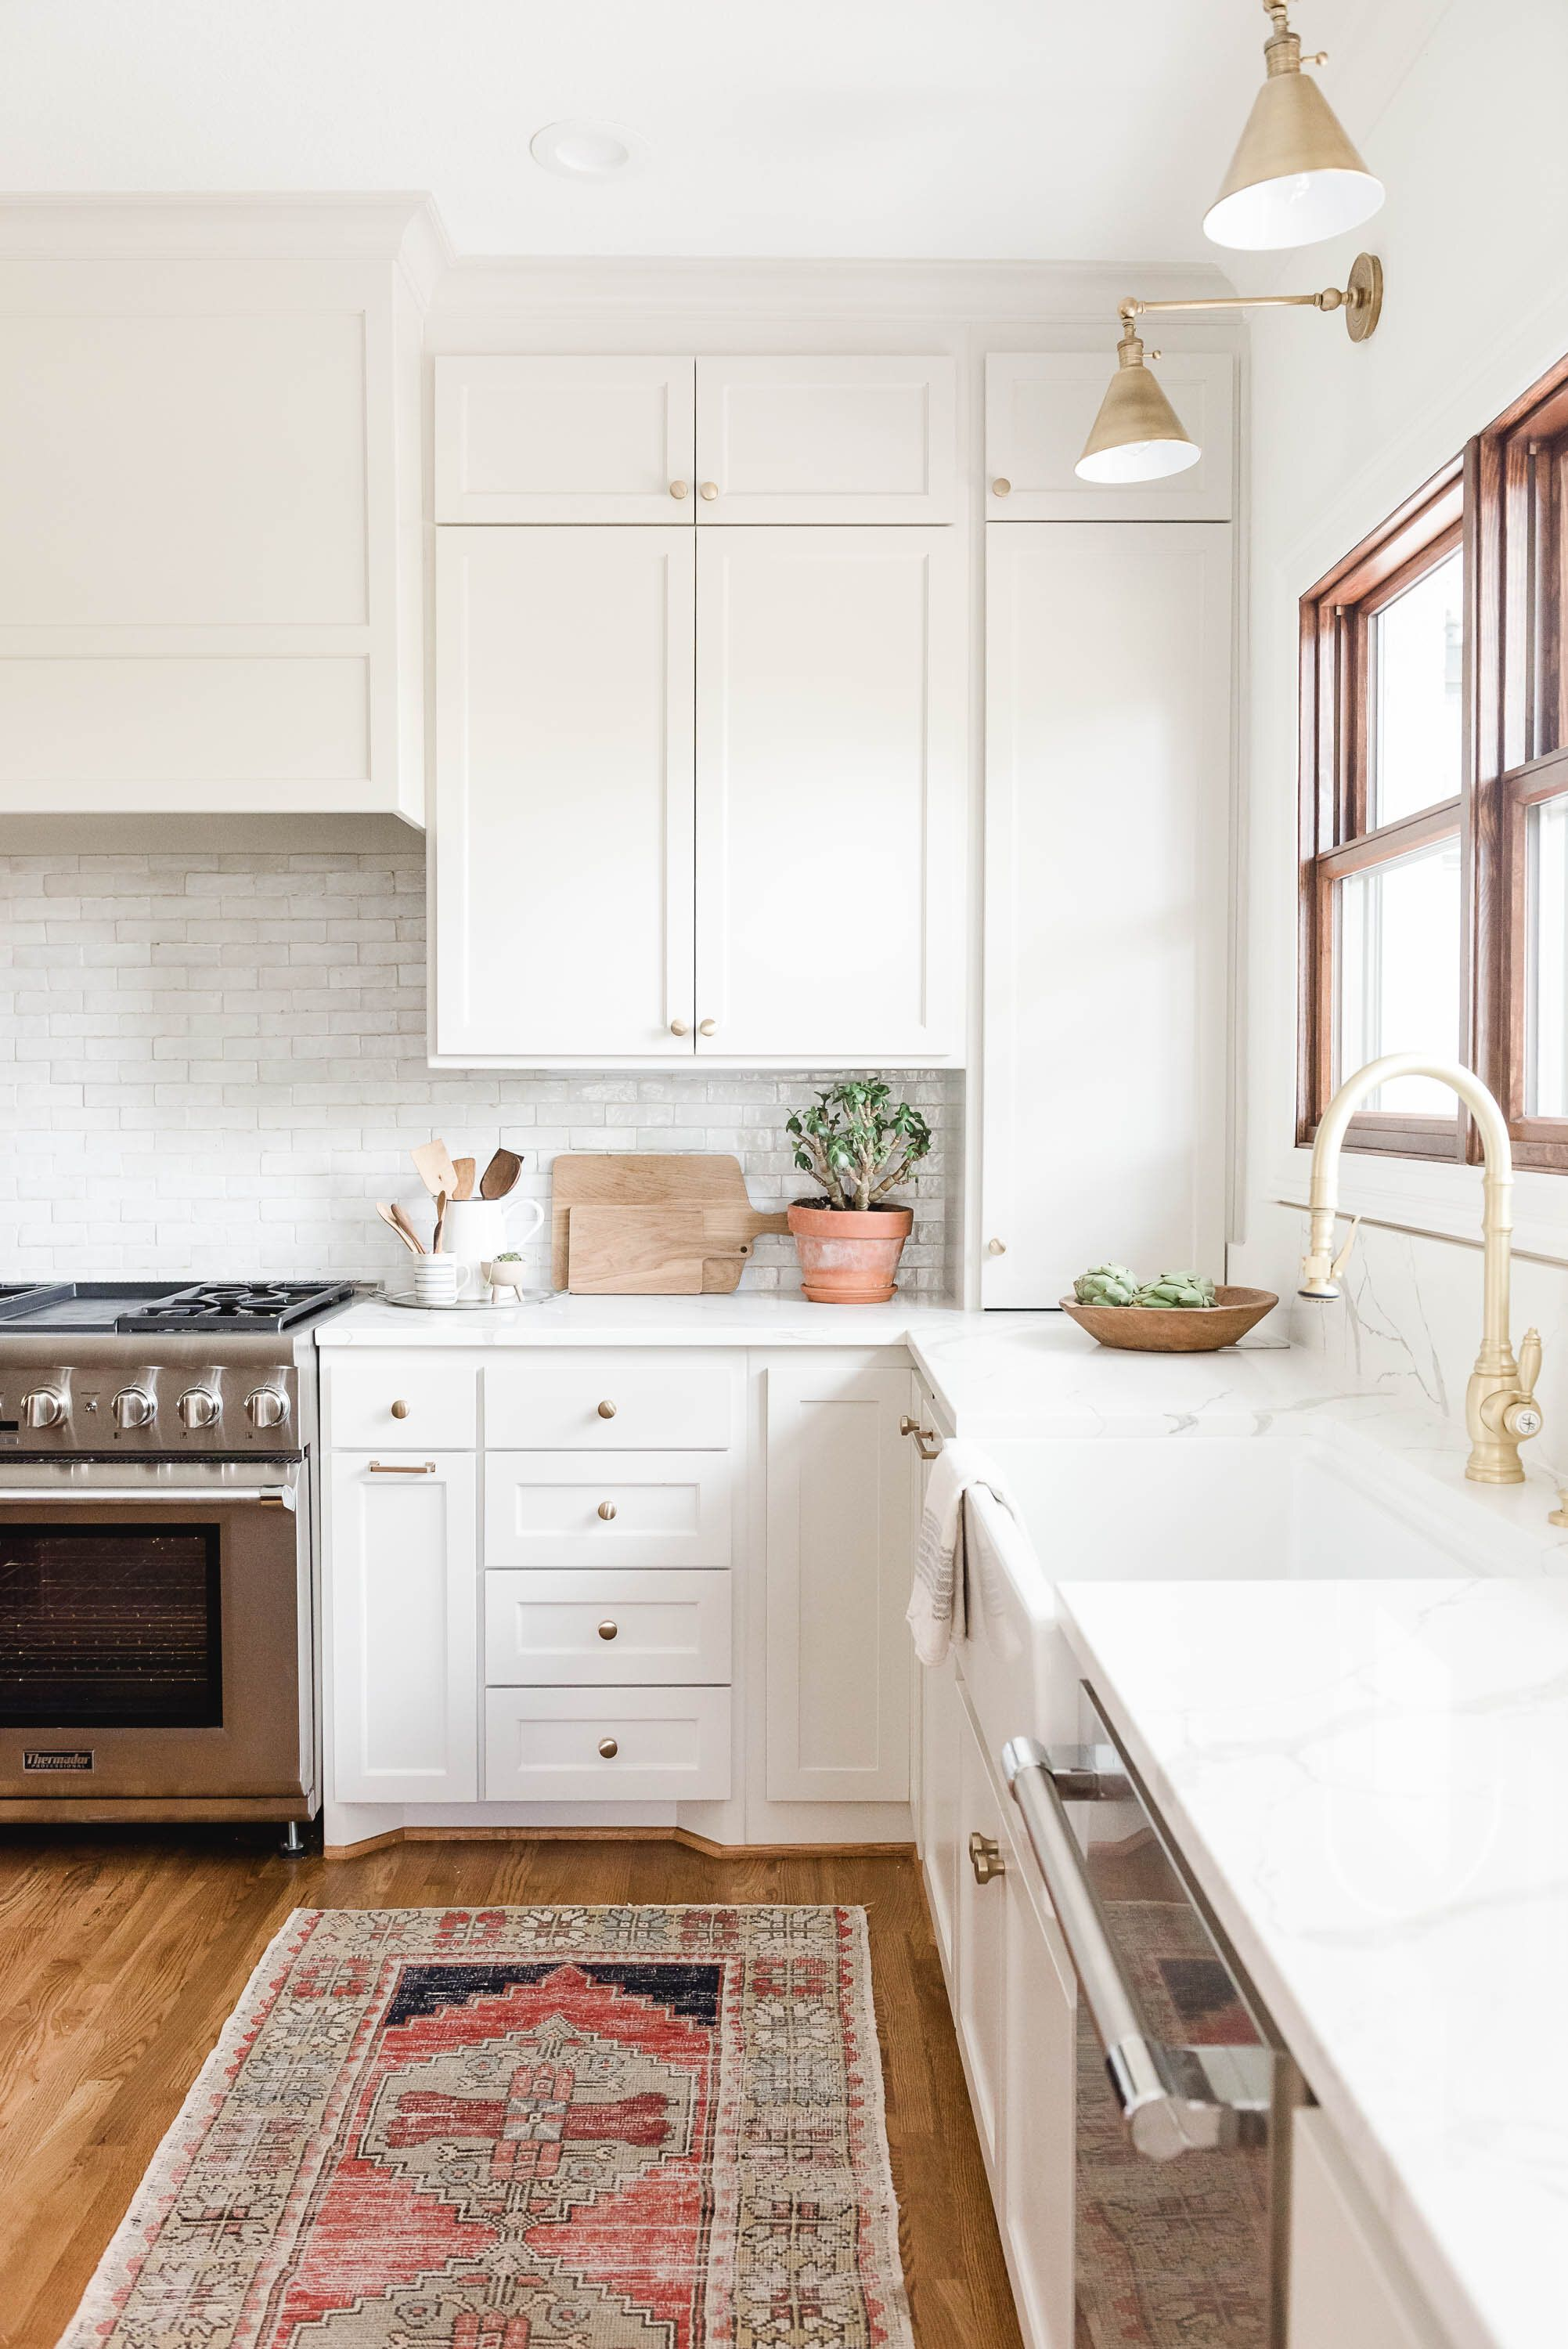 Modern Tudor Renovation High Street Homes In 2020 Kitchen Cabinets And Countertops White Kitchen Quartz White Kitchen Countertops